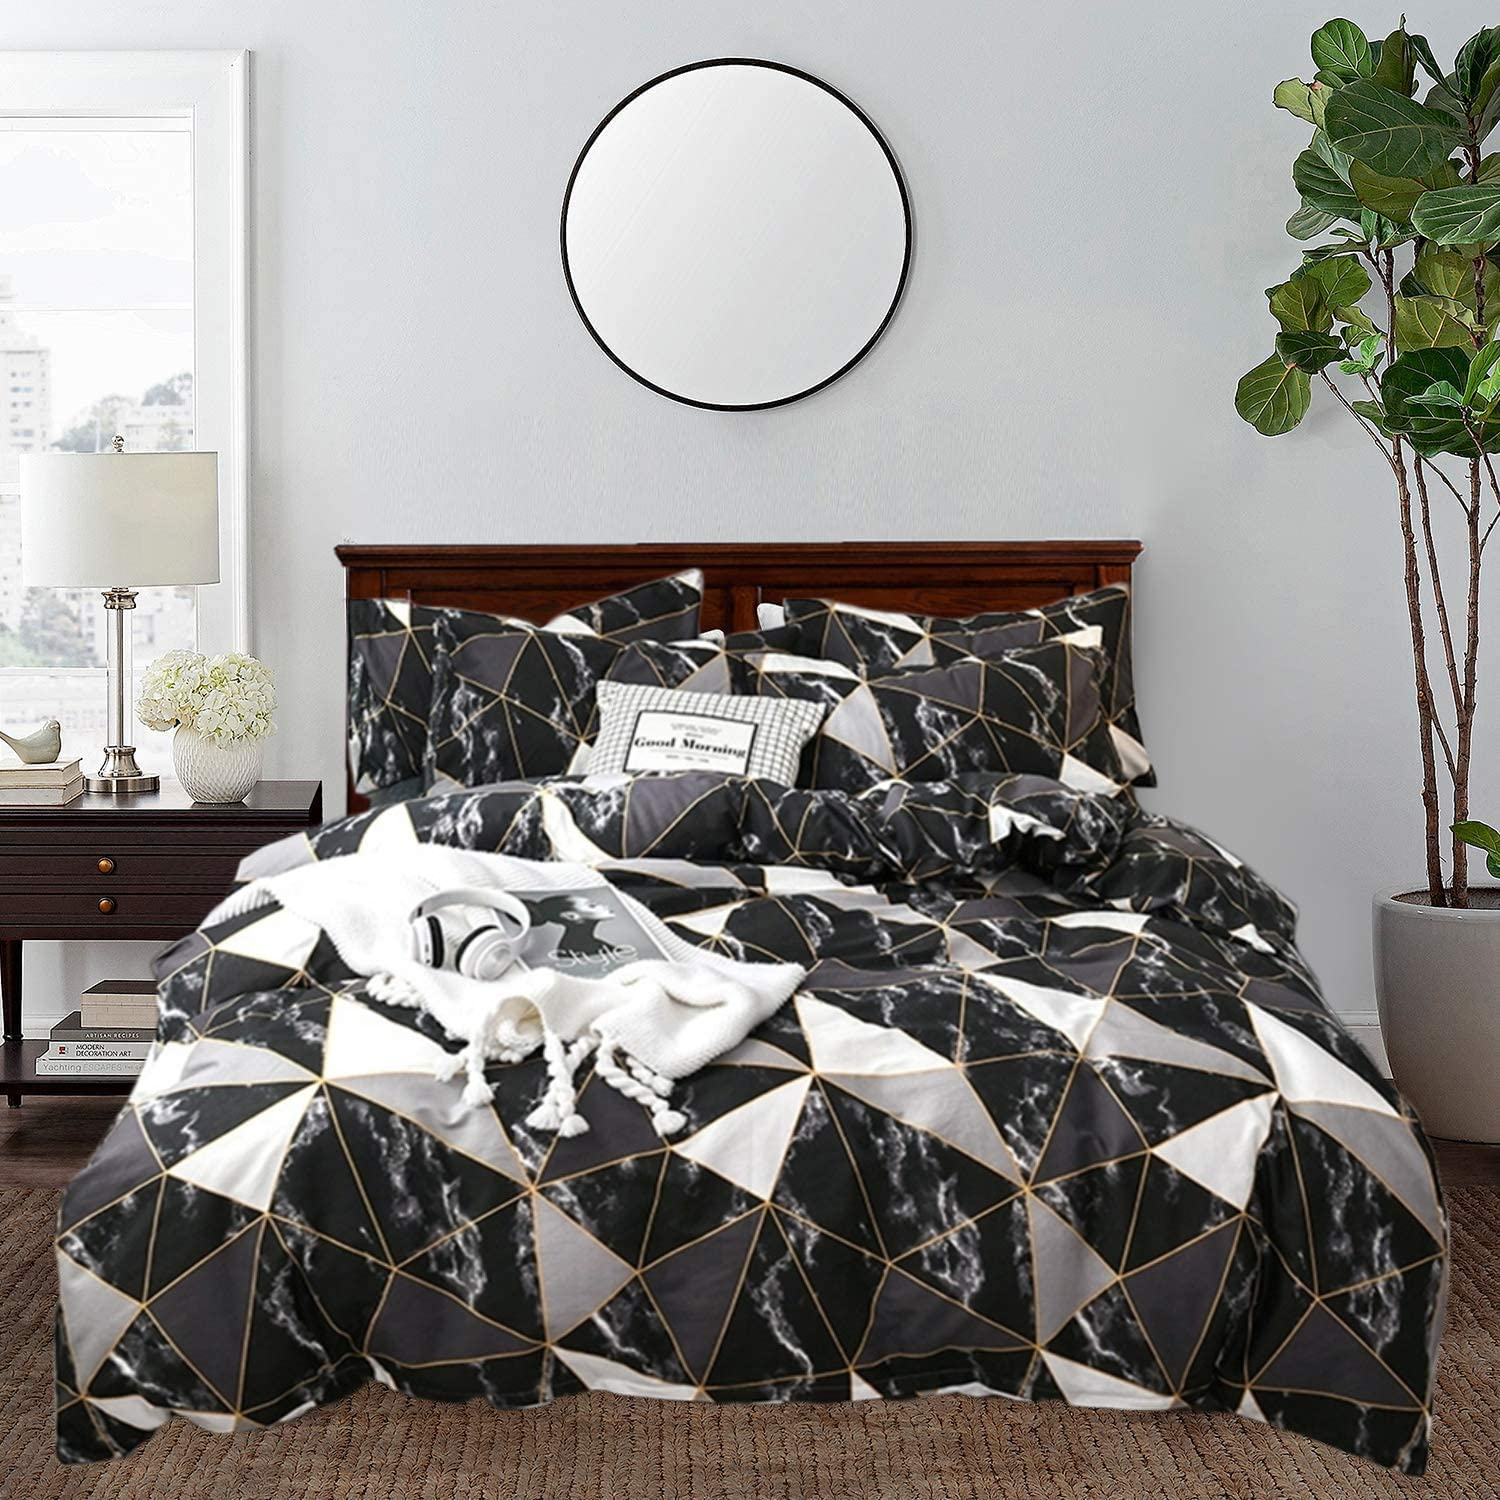 CLOTHKNOW Plaid Marble Comforter Sets King Black and White Bedding Comforter Geometric Triangle Men Women Boys Comforter White Black Grey Bed Comforter 3Pcs Comforter Set with 2 Pillowcases